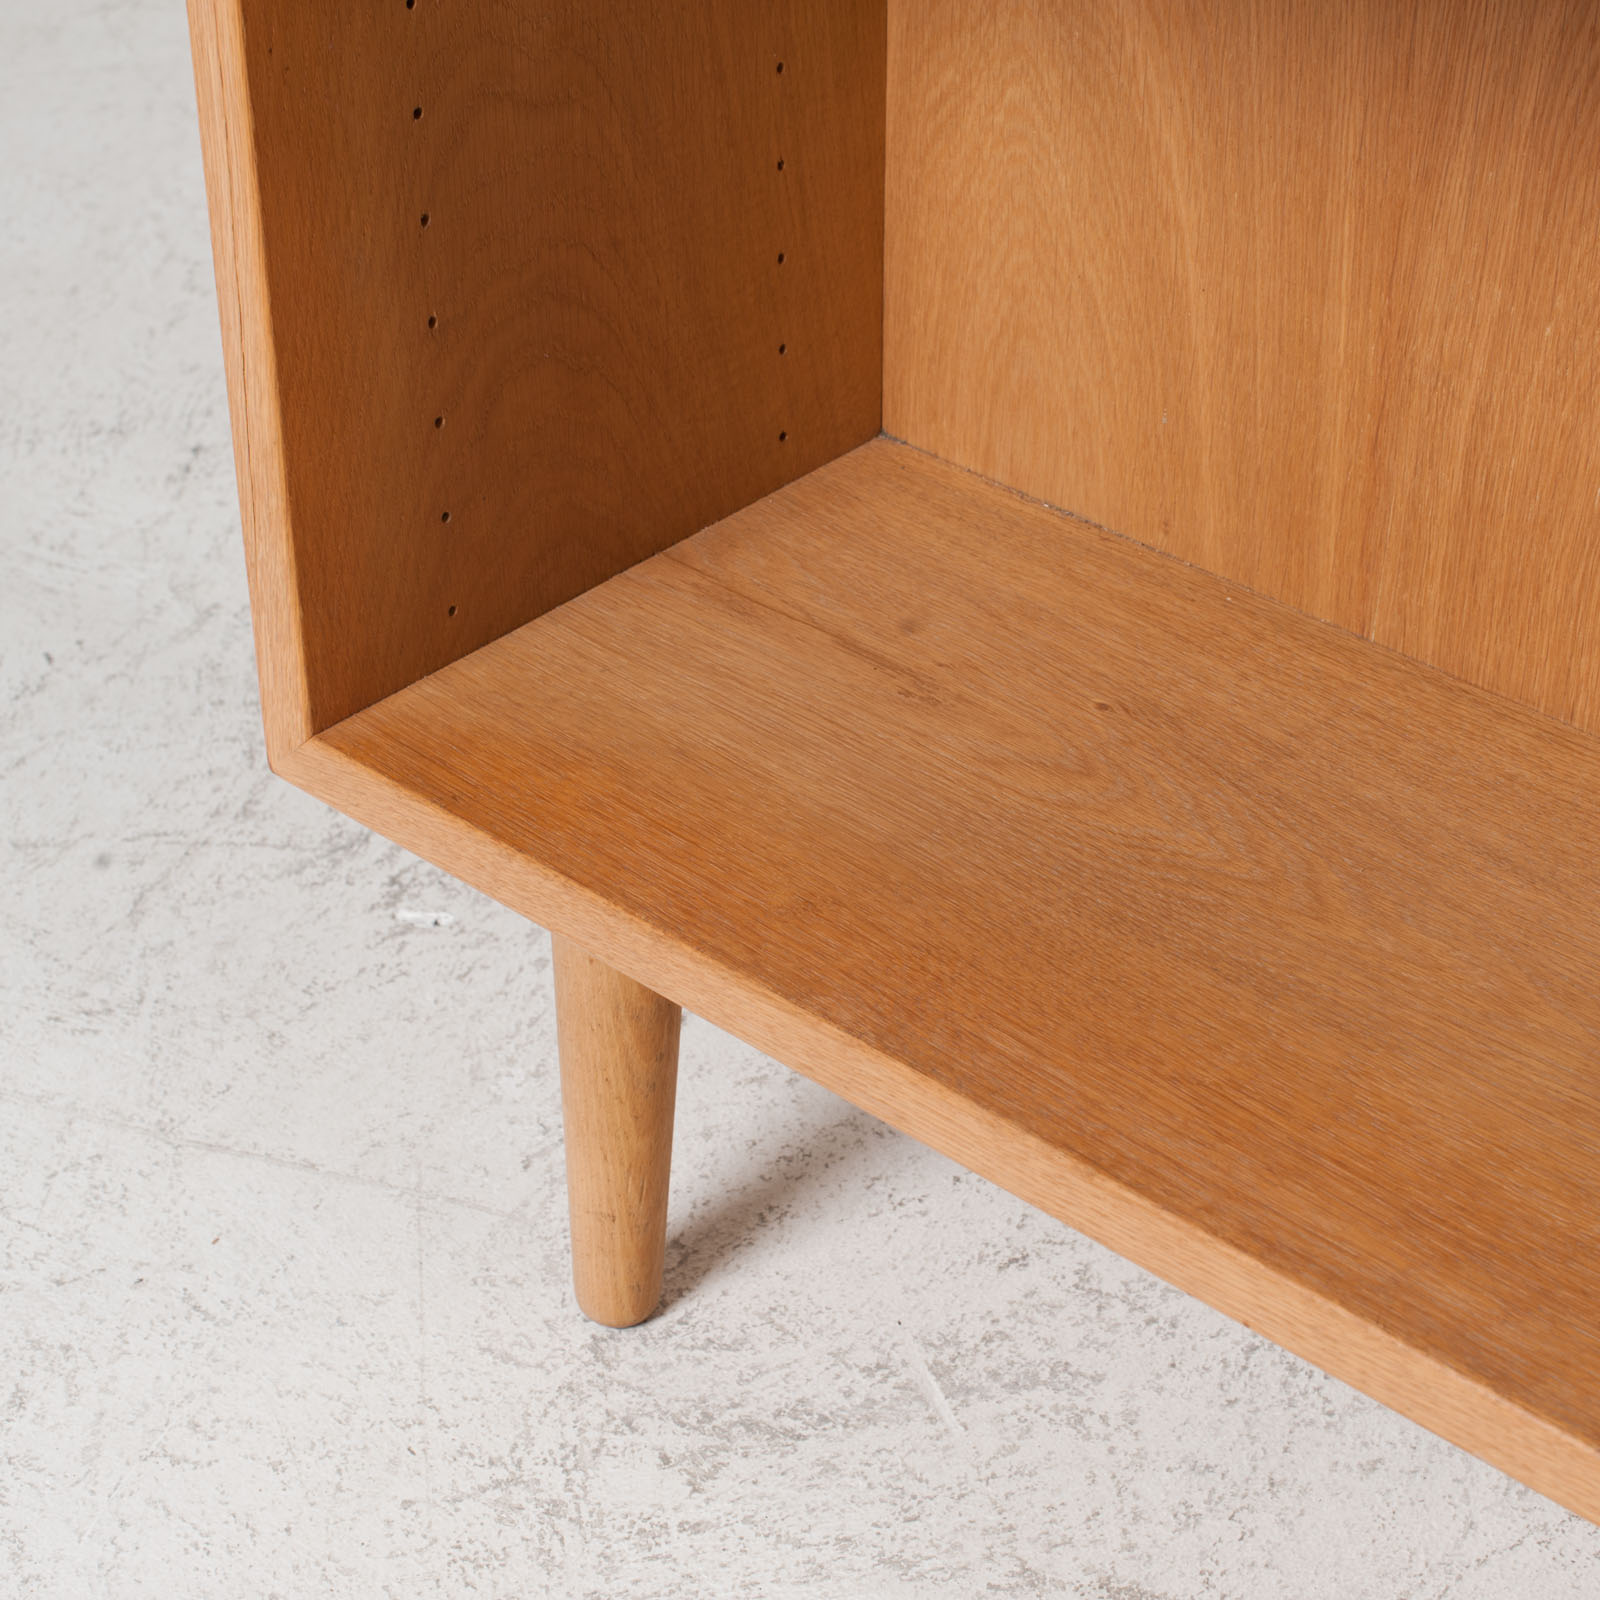 Bookcase By Borge Mogensen In Oak 1960s Denmark 05